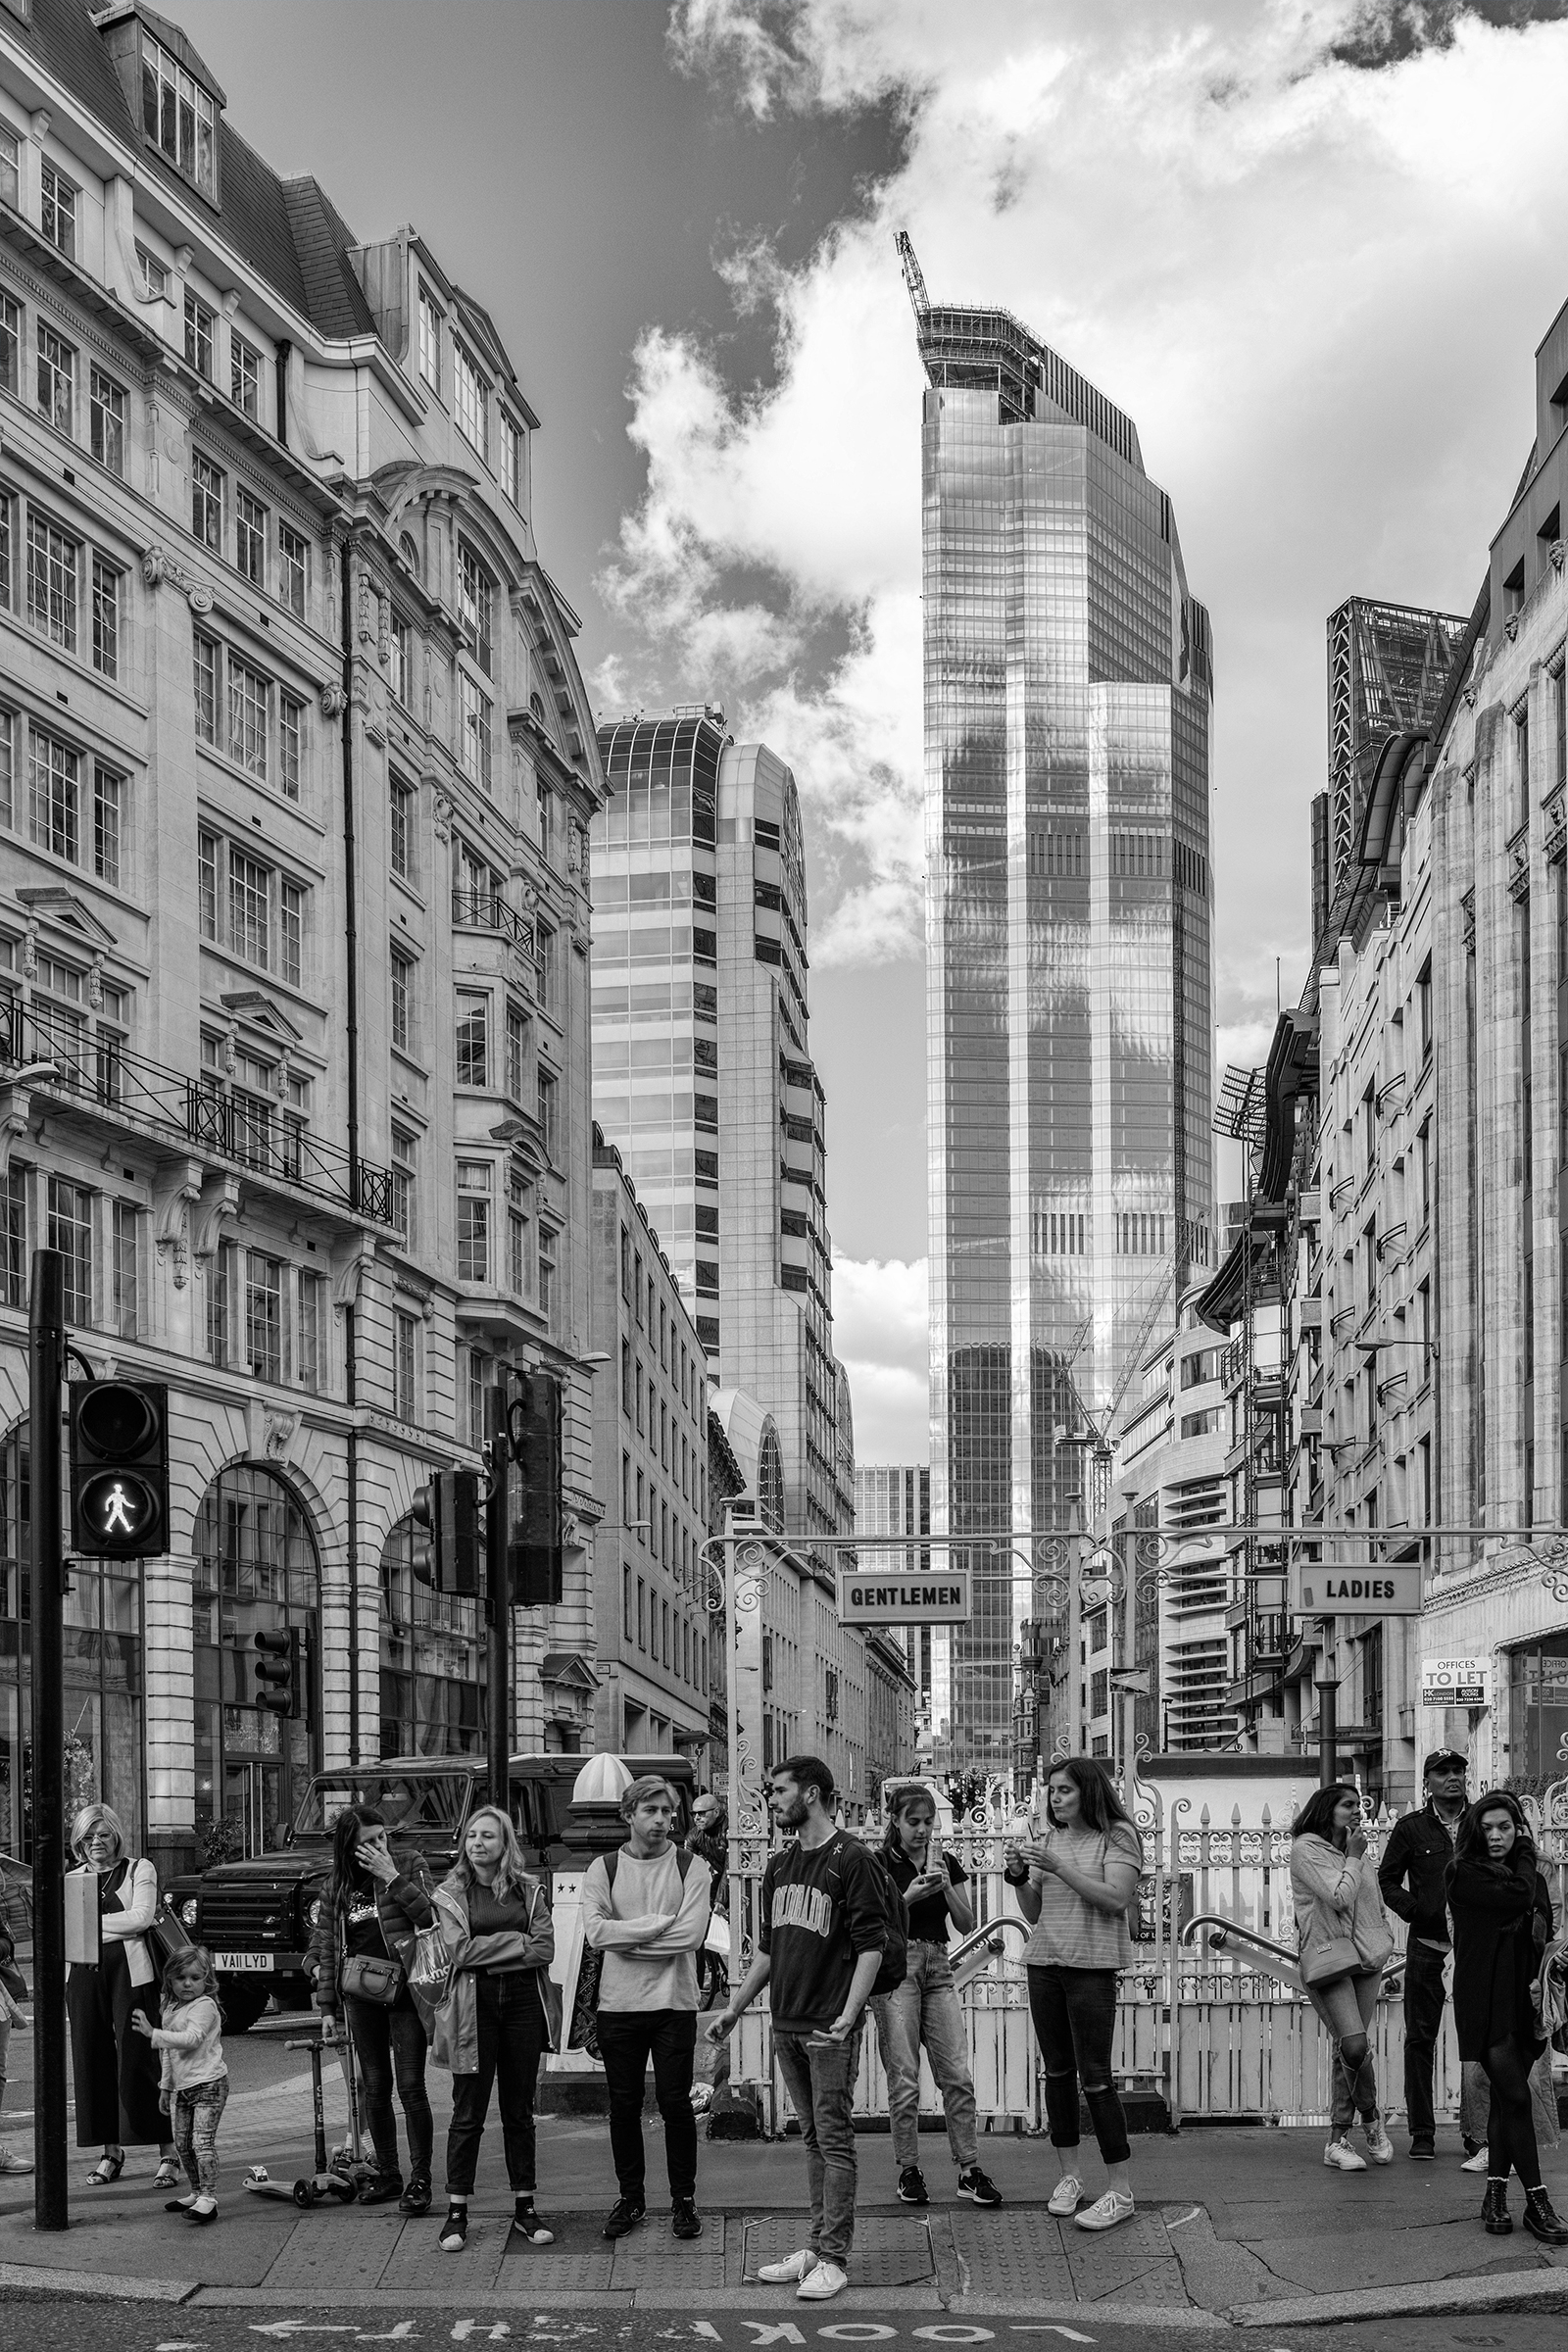 Eastcheap, London looking up Gracechurch Street with the TwentyTwo 22 Bishopsgate skyscraper in the background